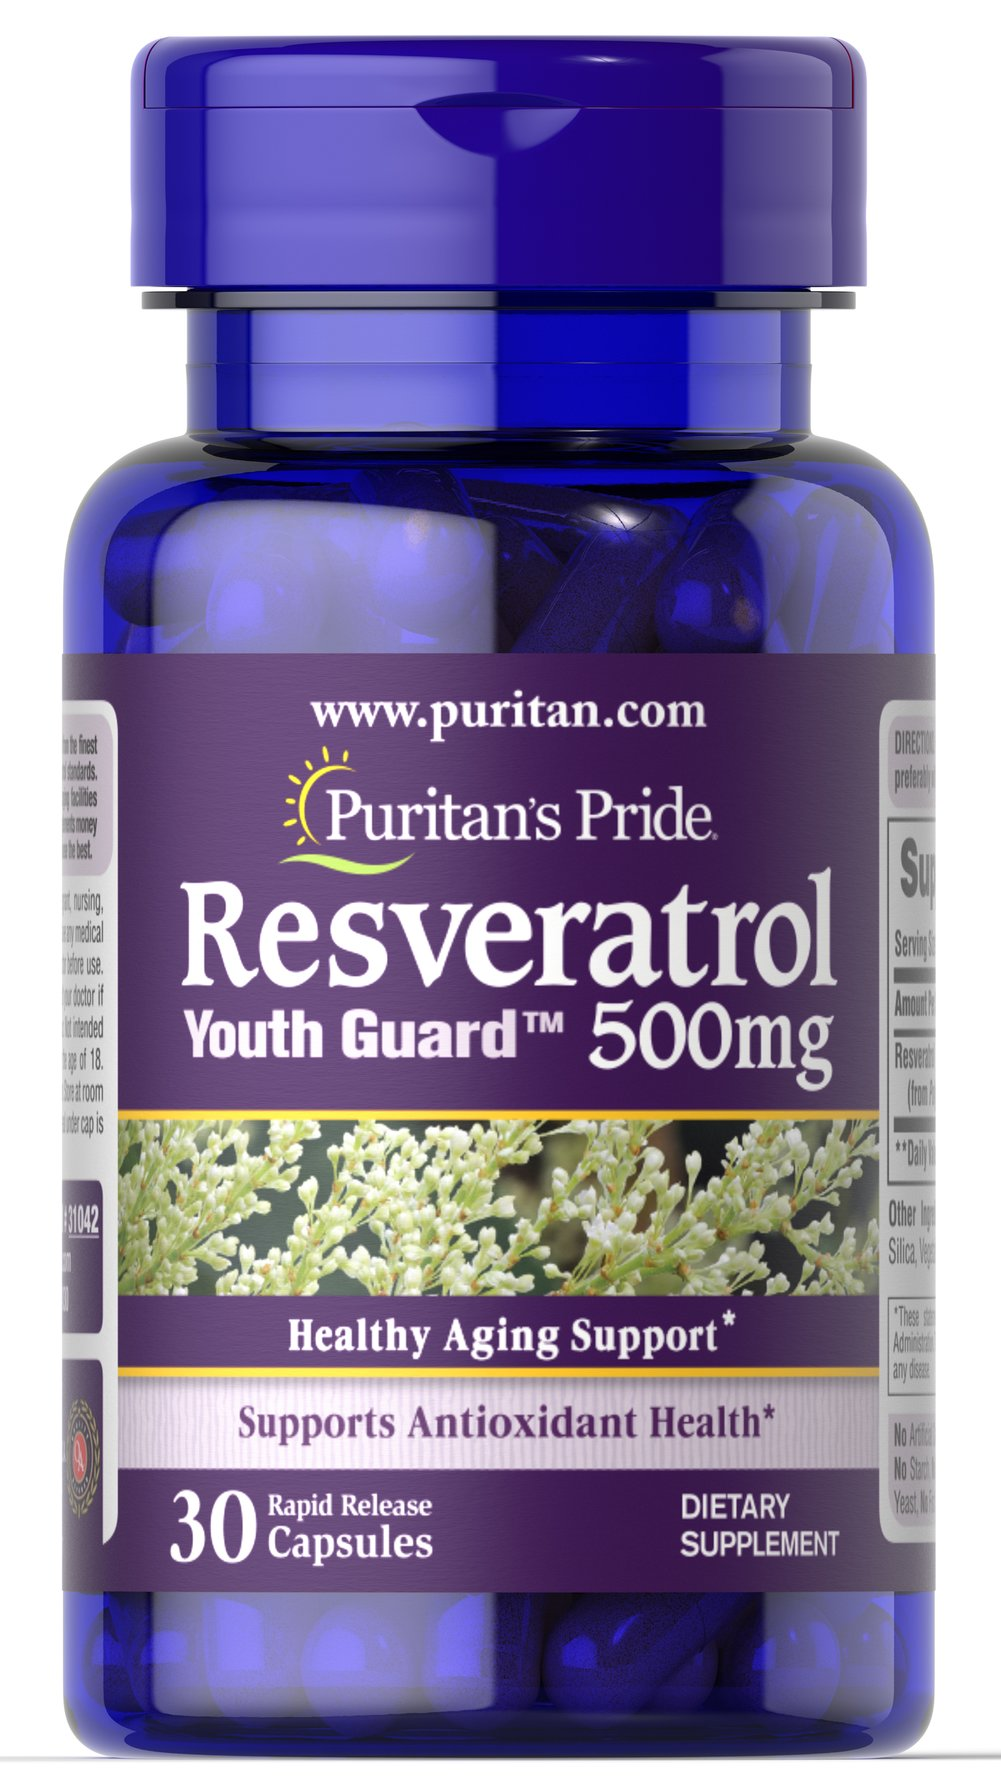 Resveratrol 500 mg <p>Resveratrol is the beneficial substance found in red wine</p> <p>Each two-capsule serving has more Resveratrol than a typical bottle of red wine</p> <p>Nutritionally supports antioxidant health**</p> <p>Helps fight against cell-damaging free radicals**</p> <p>Maximum strength capsules are formulated for quick release into your system</p> <p>Vegetarian friendly</p> 30 Capsules 500 mg $45.29